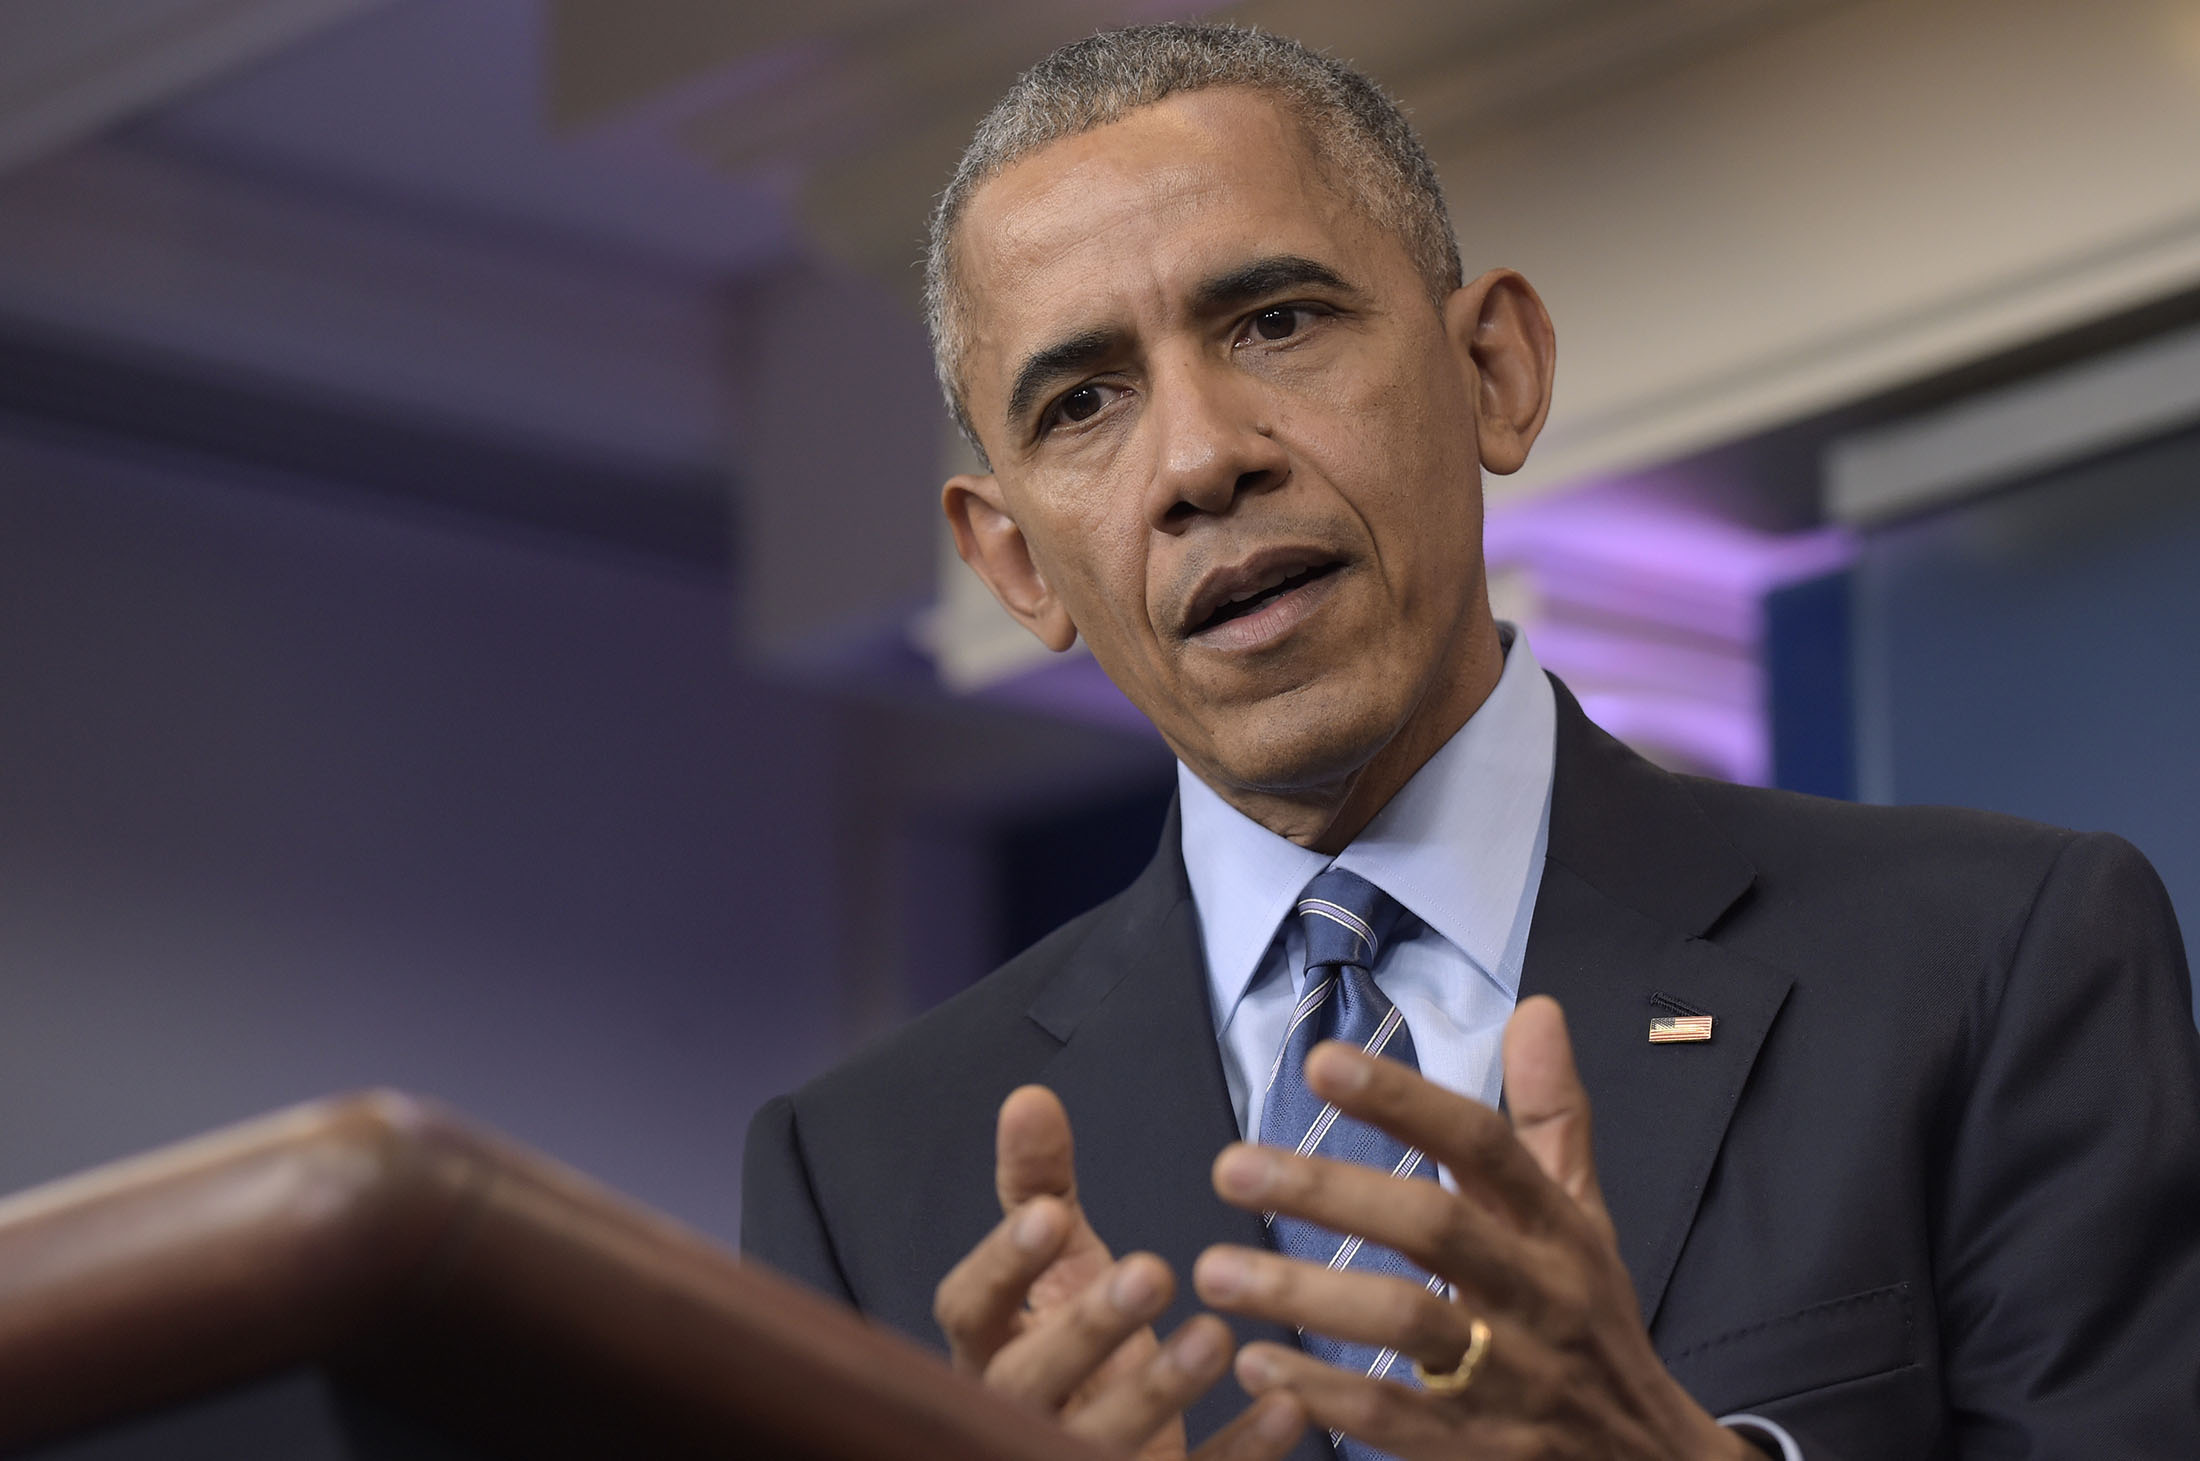 In this Dec. 16, 2016, file photo, President Barack Obama speaks during a news conference in the briefing room of the White House in Washington. Congressional Republicans intent on repealing Obama's health care law assert that it's already failed and is in a 'death spiral.' But most experts say that despite the law's widely acknowledged problems, the GOP's claims are exaggerated and Obamacare is not currently in a 'death spiral.' (AP Photo/Susan Walsh, File)